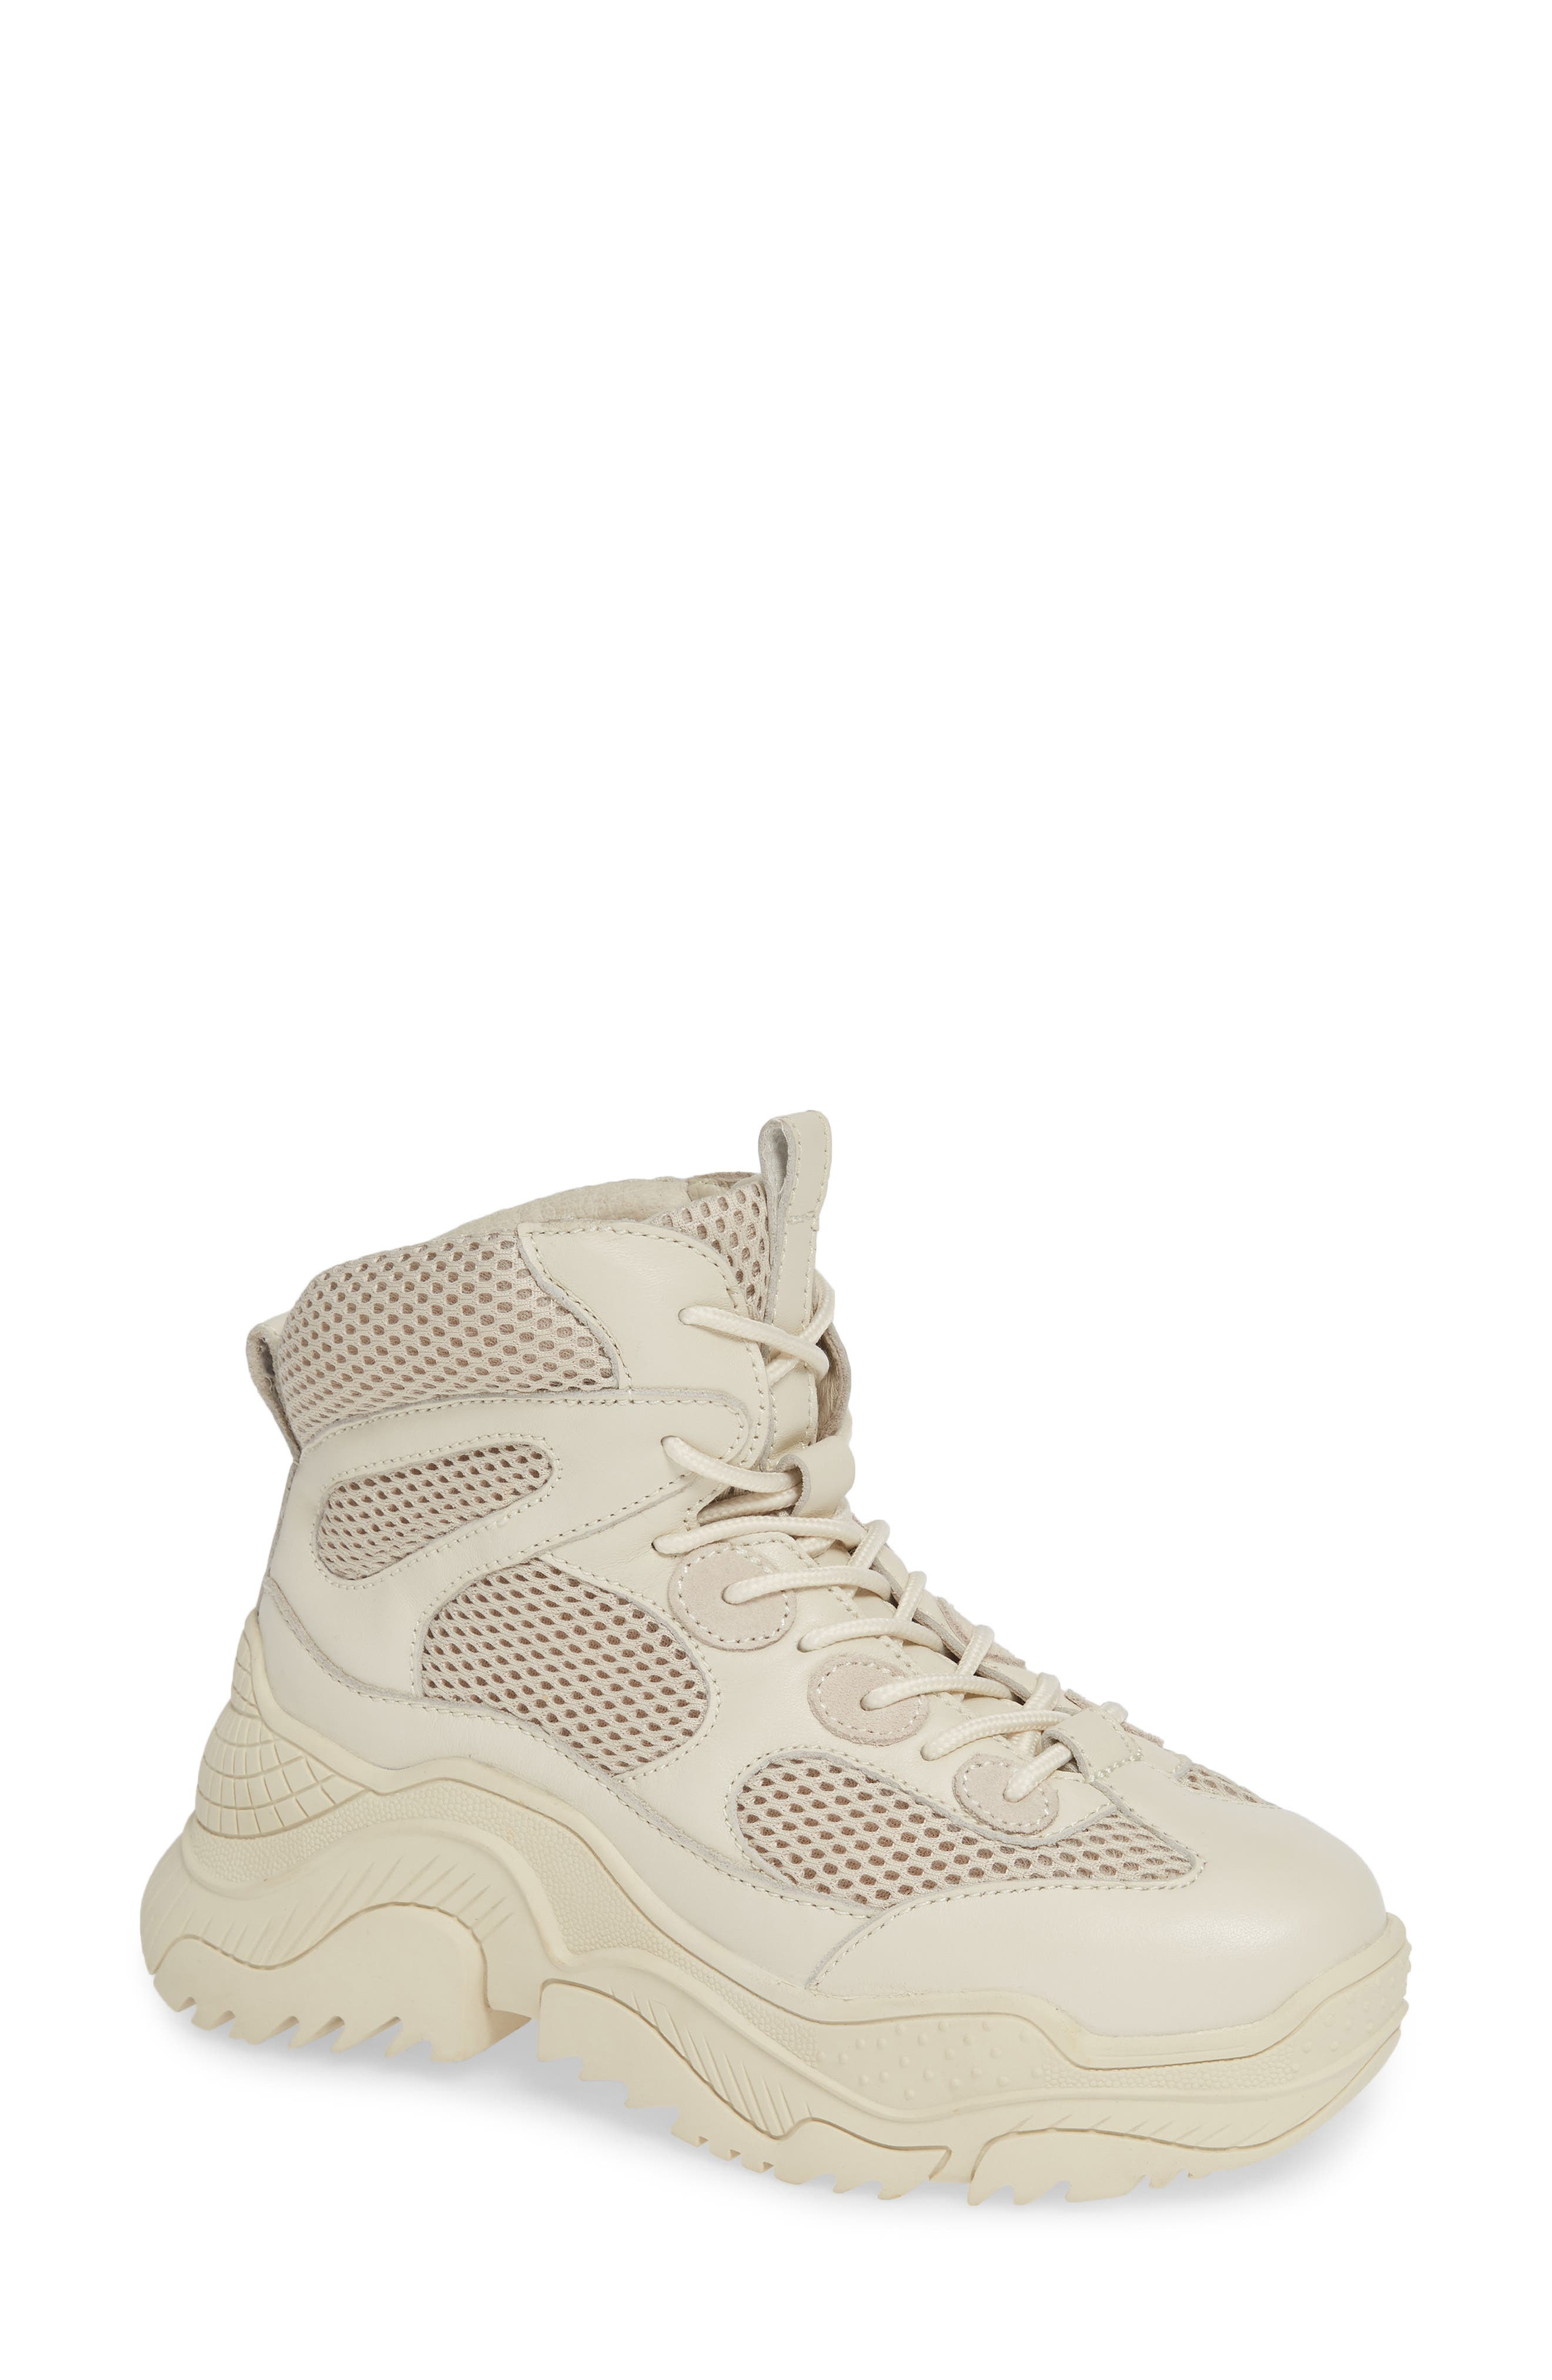 Pyro Wedge Sneaker Boot,                             Main thumbnail 1, color,                             OFF WHITE COMBO